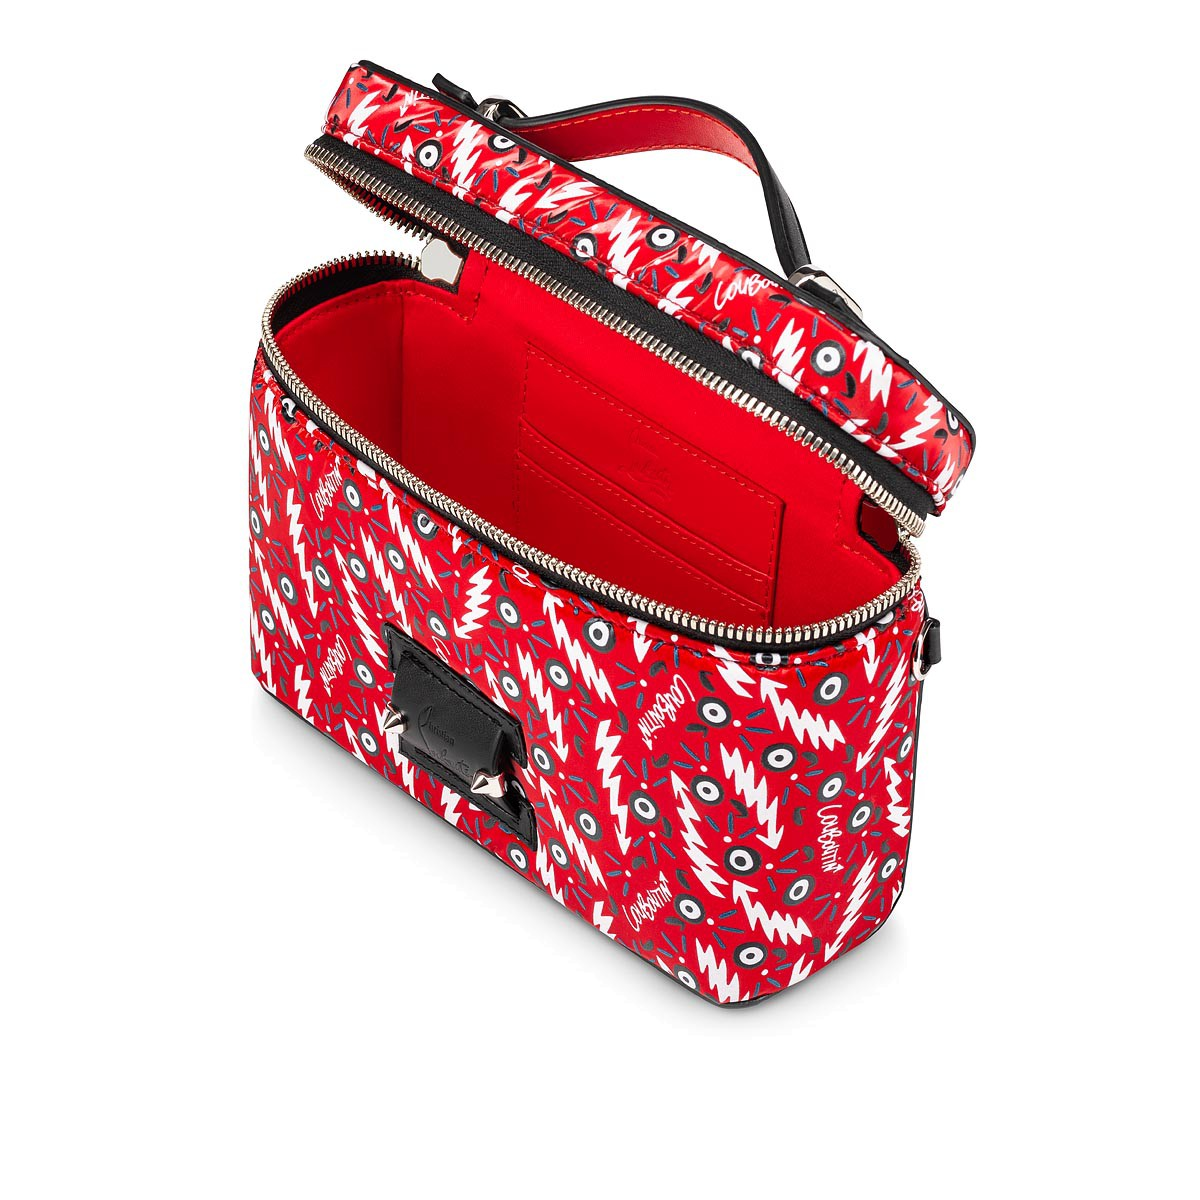 Bags - Kypipouch Small - Christian Louboutin